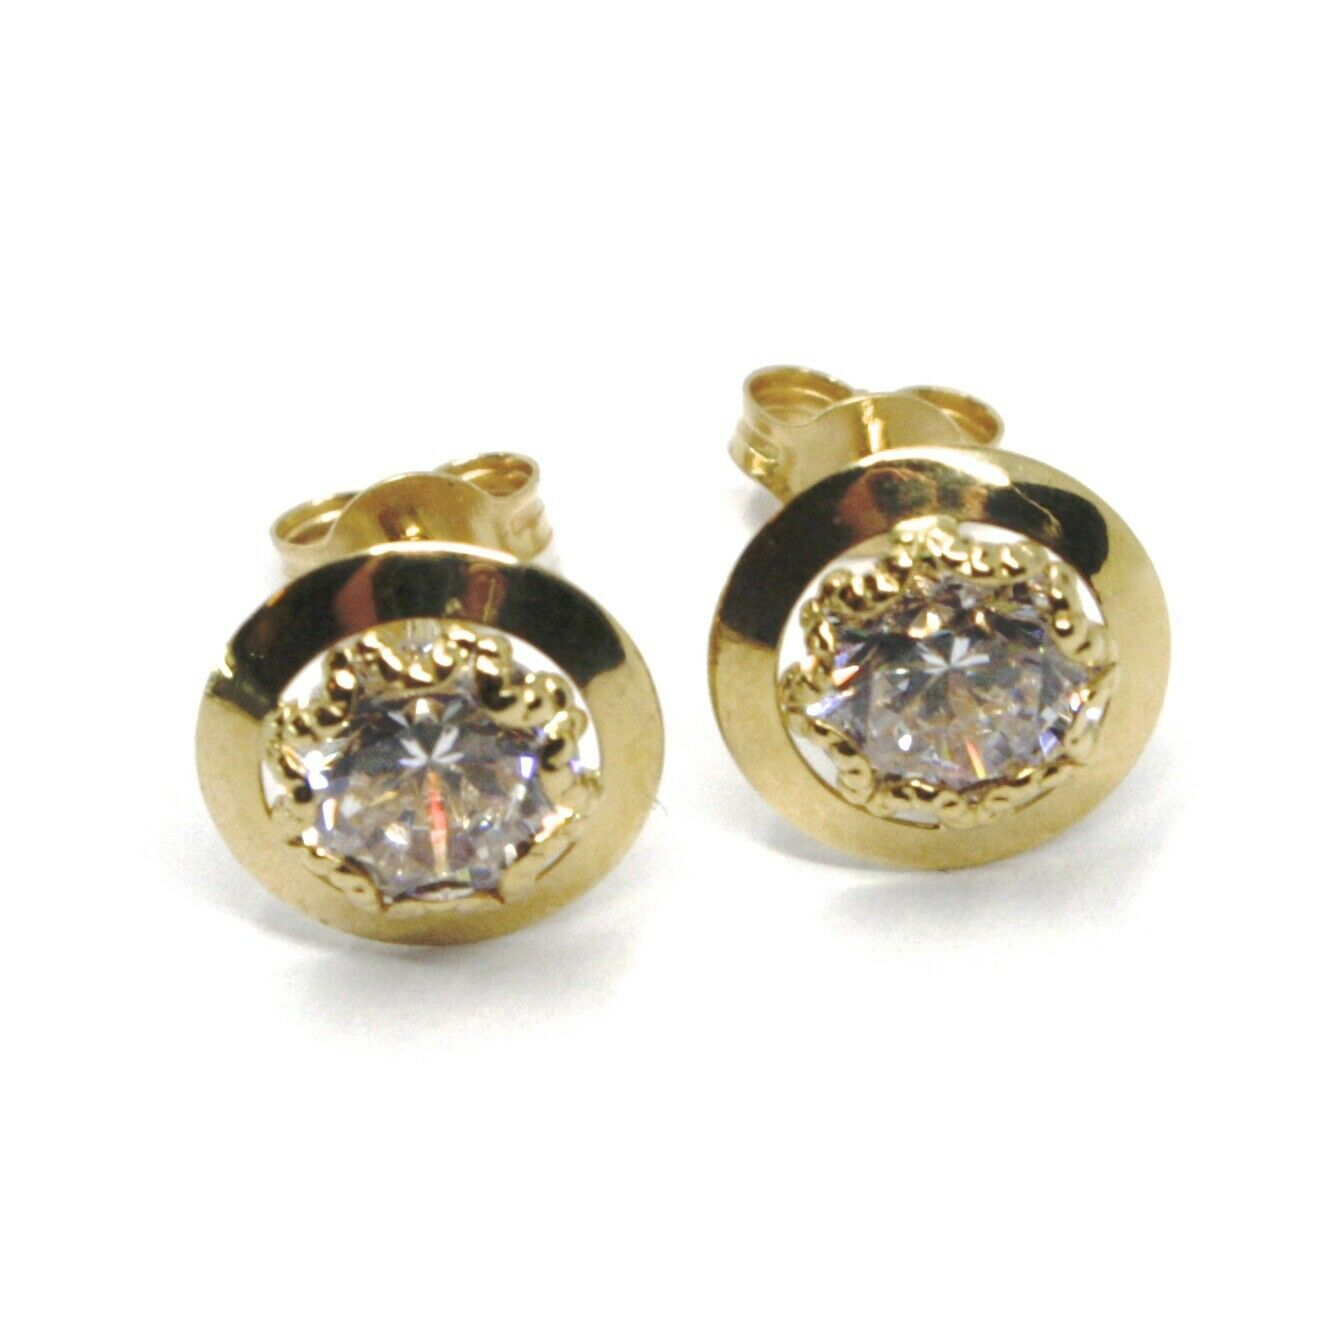 18K YELLOW GOLD BUTTON EARRINGS CUBIC ZIRCONIA, ROUND DISC WORKED FRAME, 10 MM